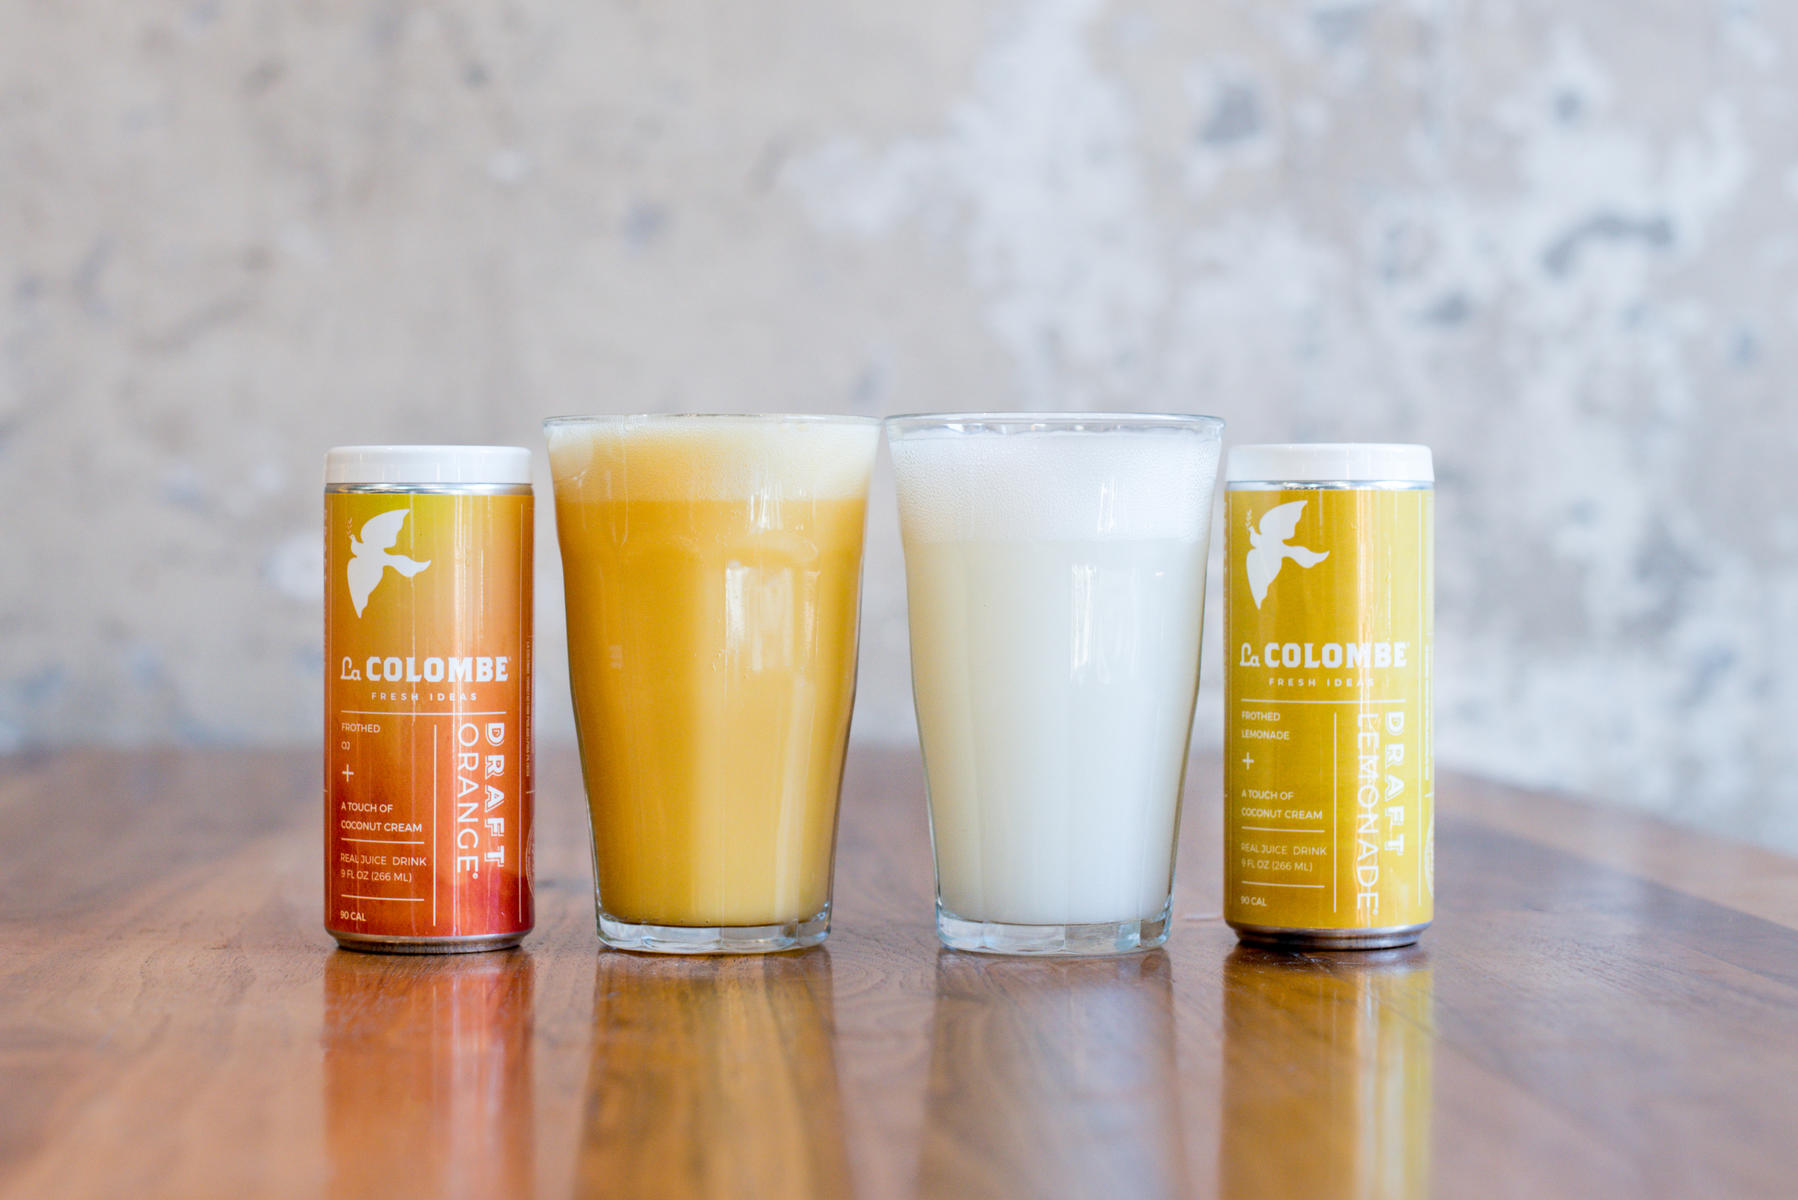 La Colombe Draft Juices